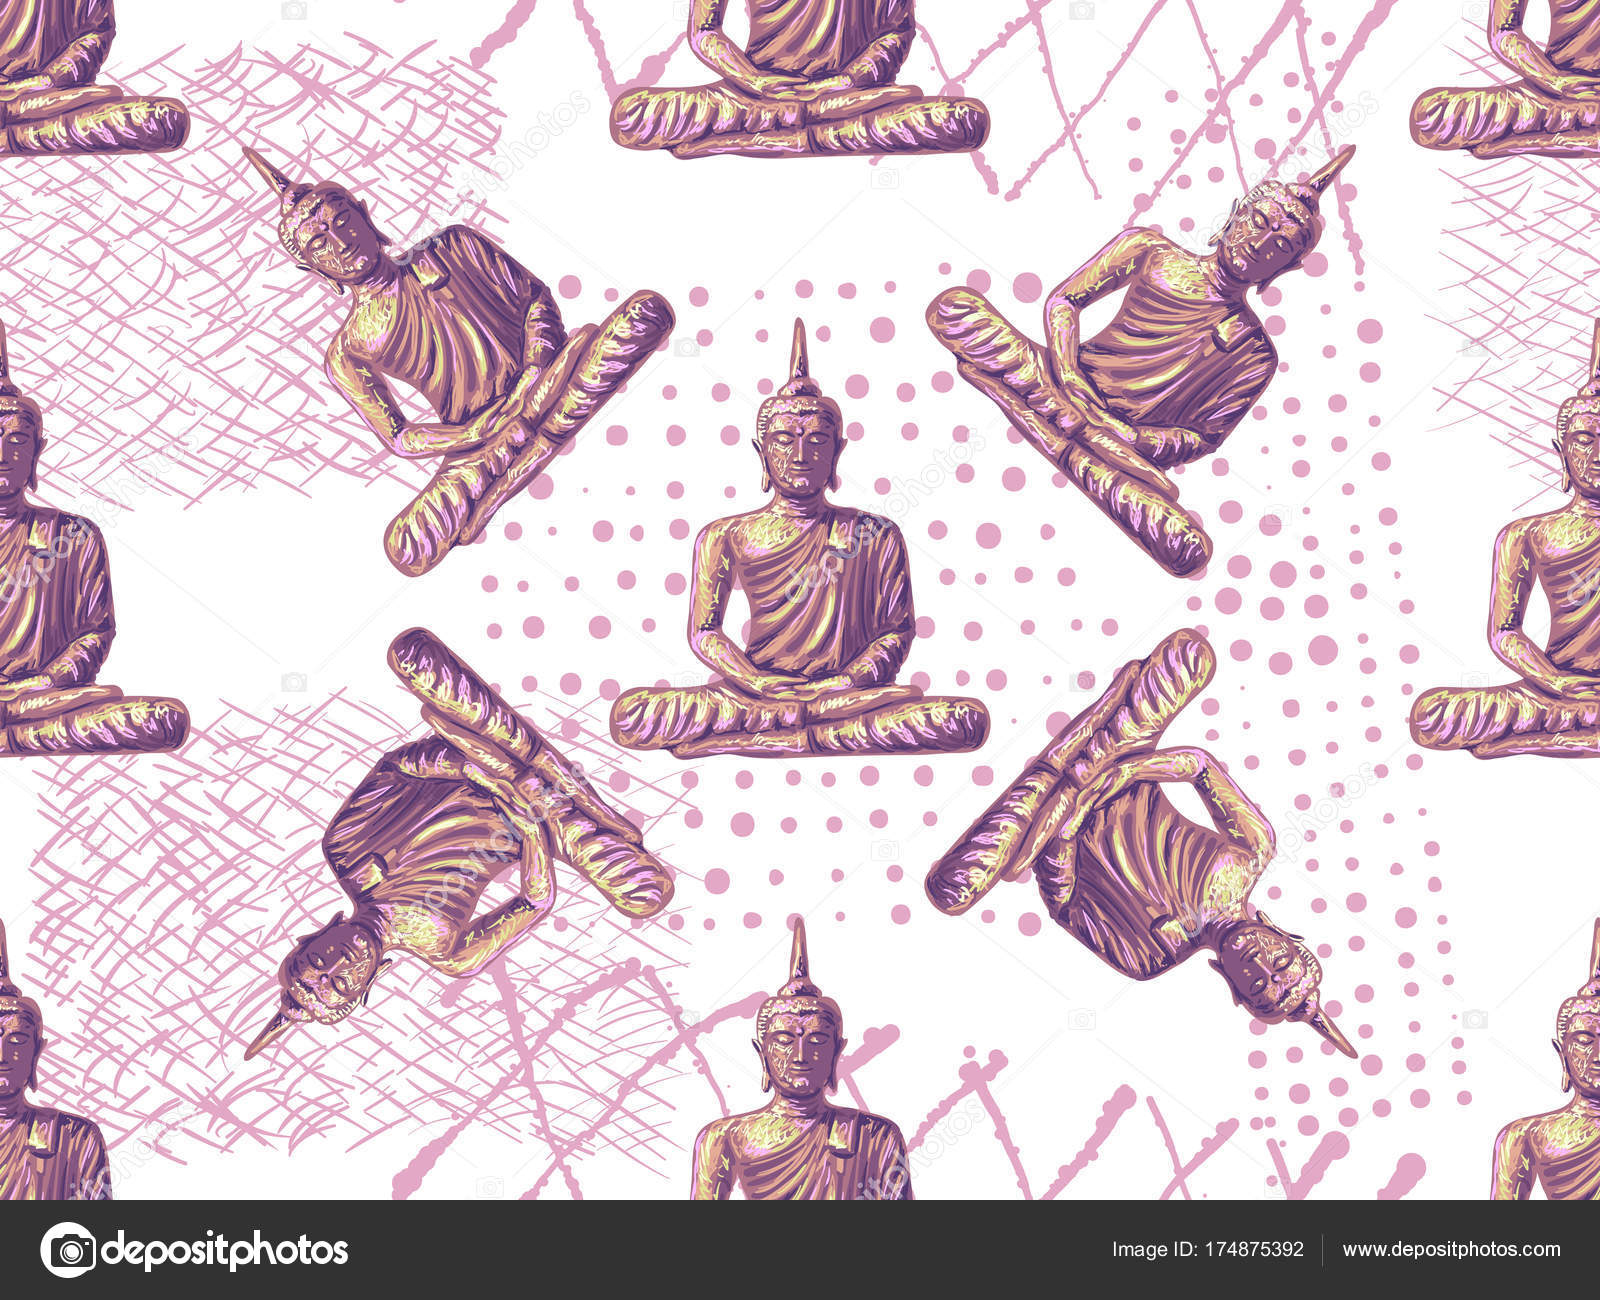 Seamless vintage hippies pattern with sitting buddha thai god seamless vintage hippies pattern with sitting buddha thai god yoga zen esoteric background biocorpaavc Choice Image